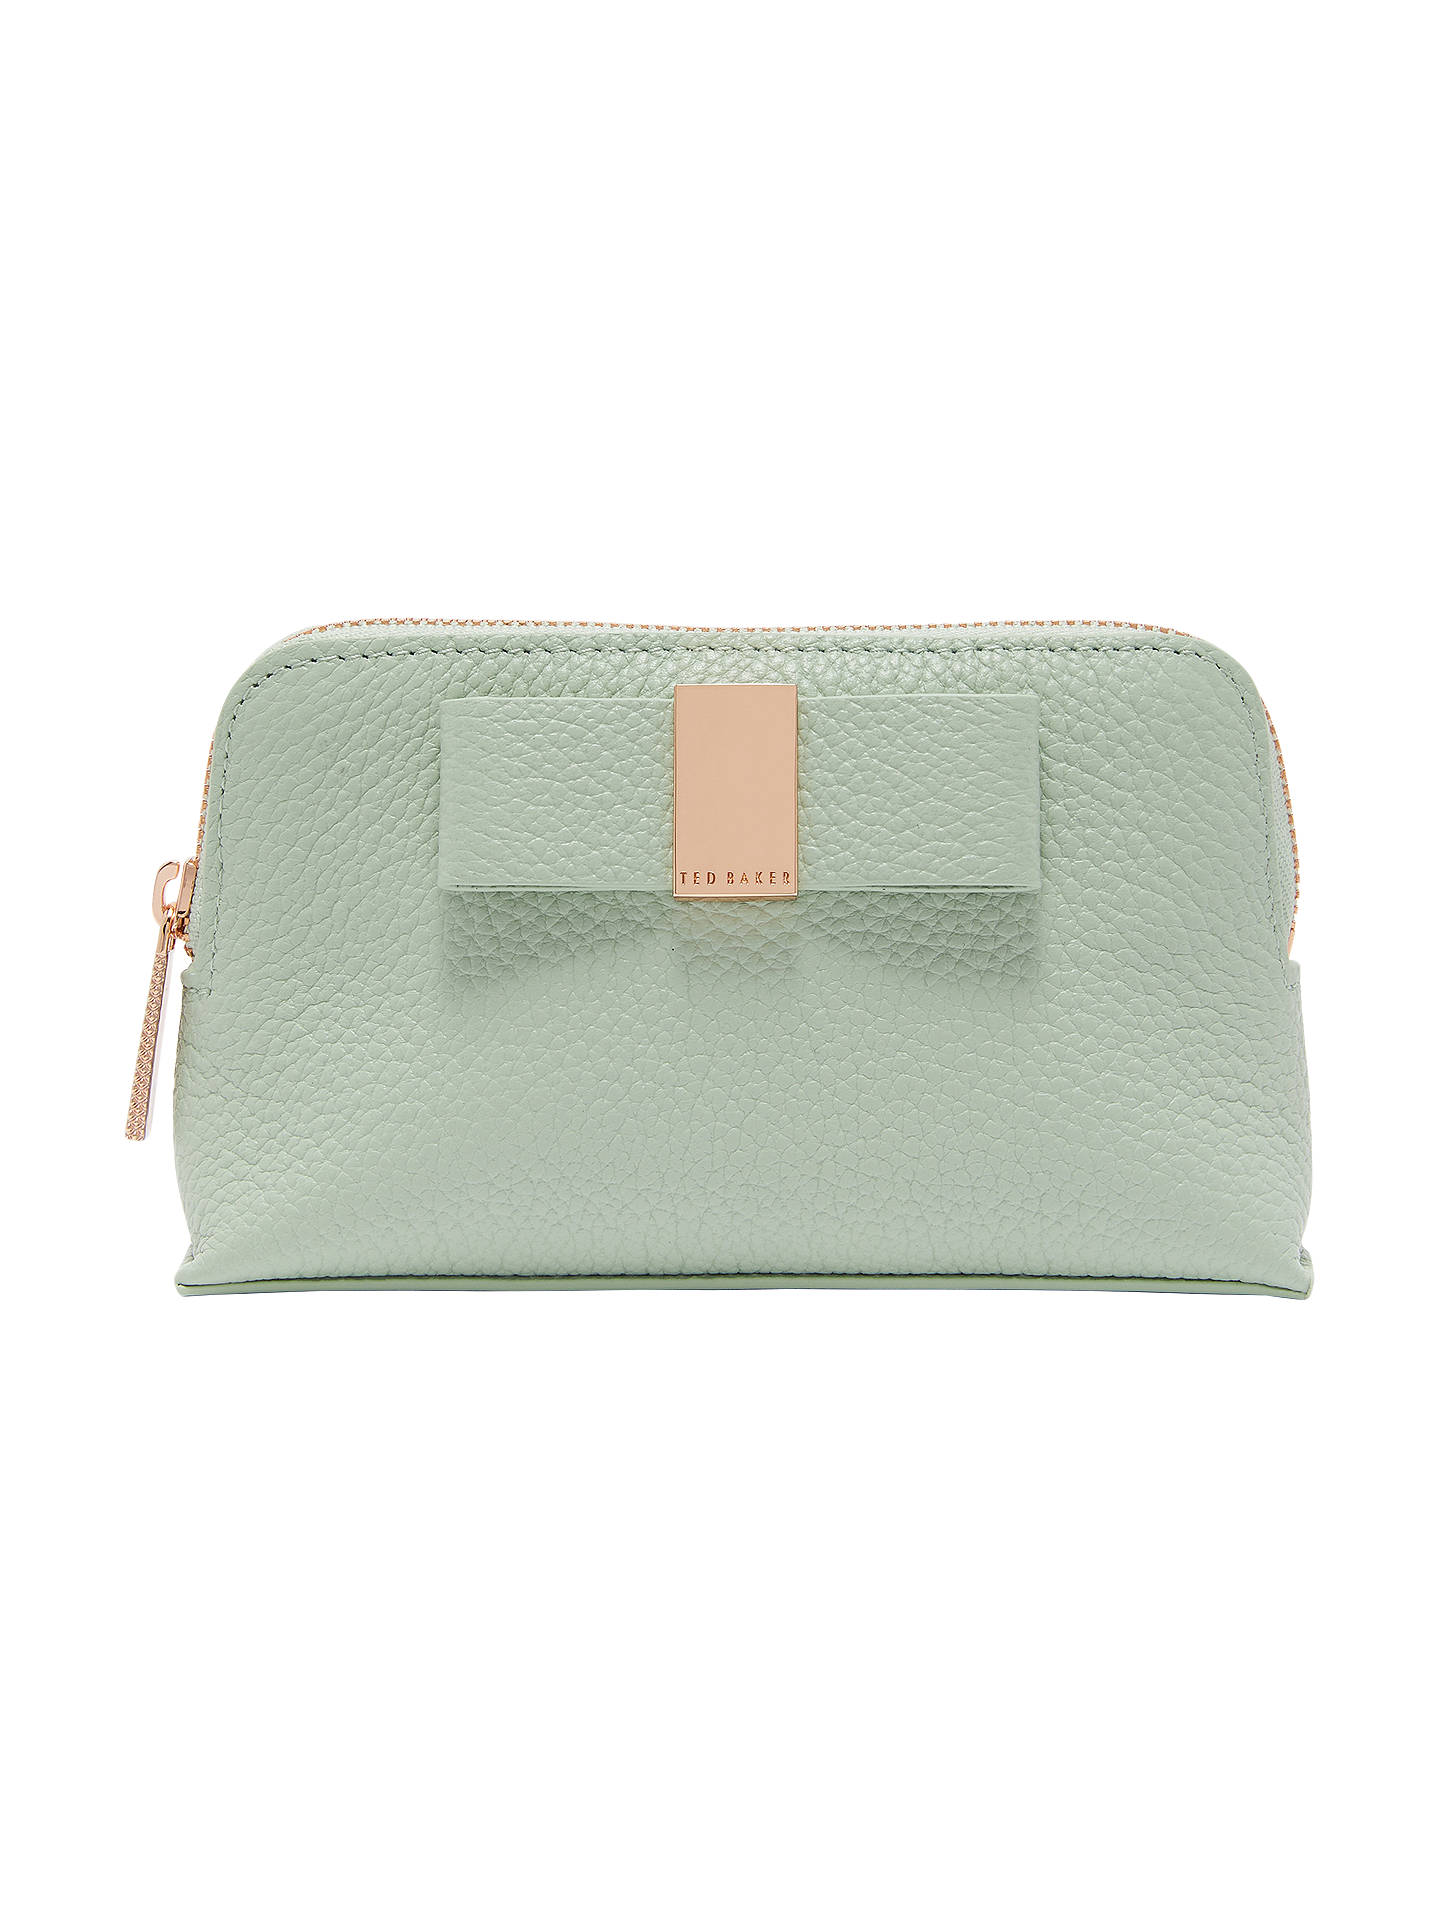 BuyTed Baker Raulph Leather Bow Makeup Bag, Olive Online at johnlewis.com  ... 59476a9cb9